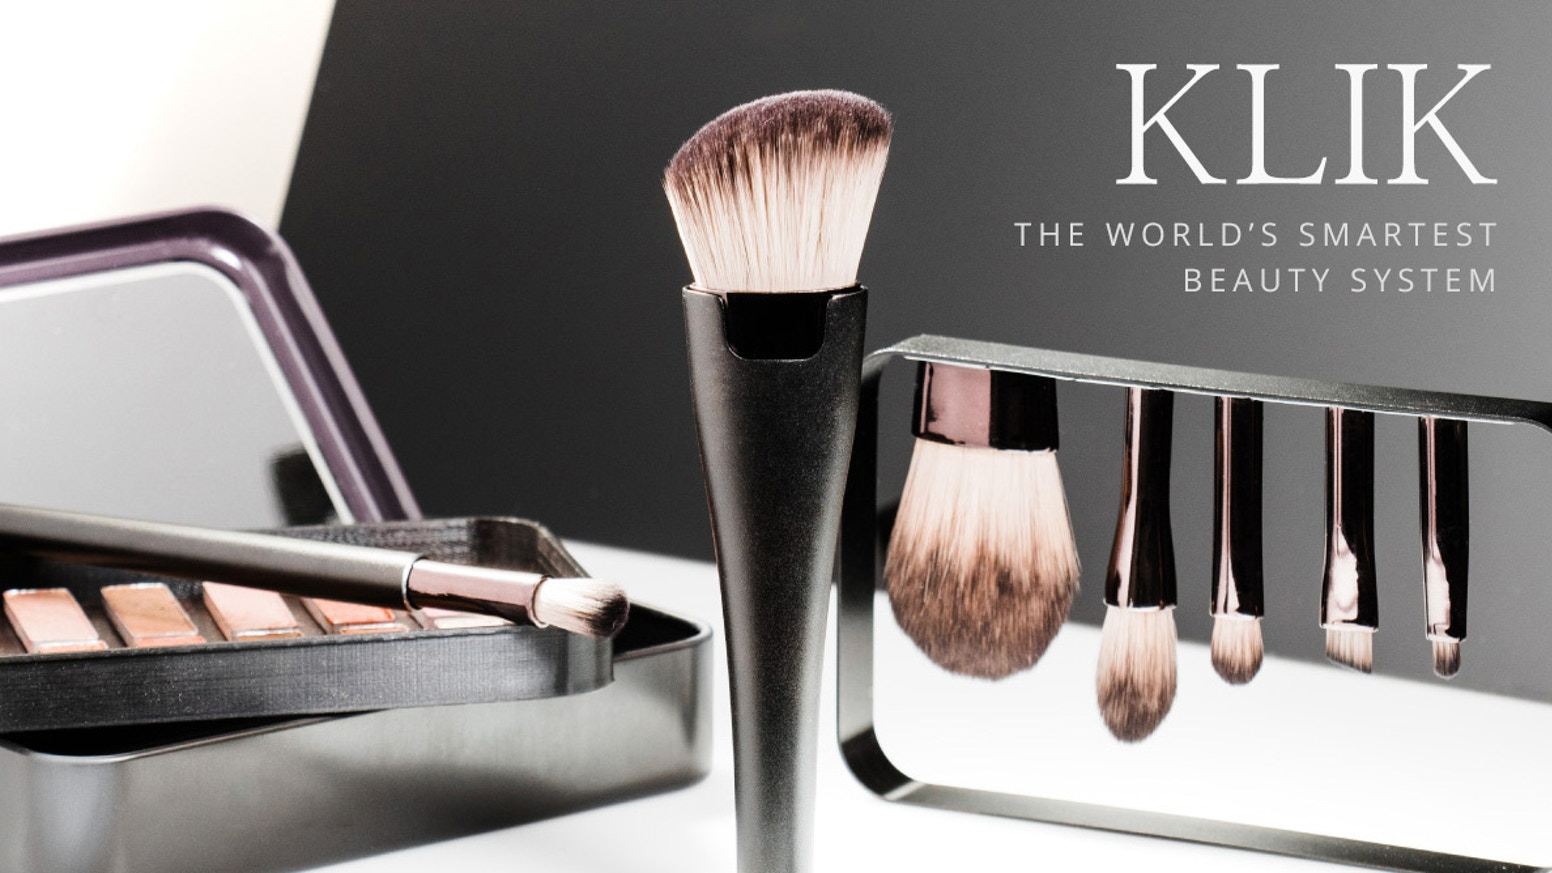 Modular magnetic make-up brushes, a universal make-up palette and an innovative brush drying rack - all within one tiny organizer!